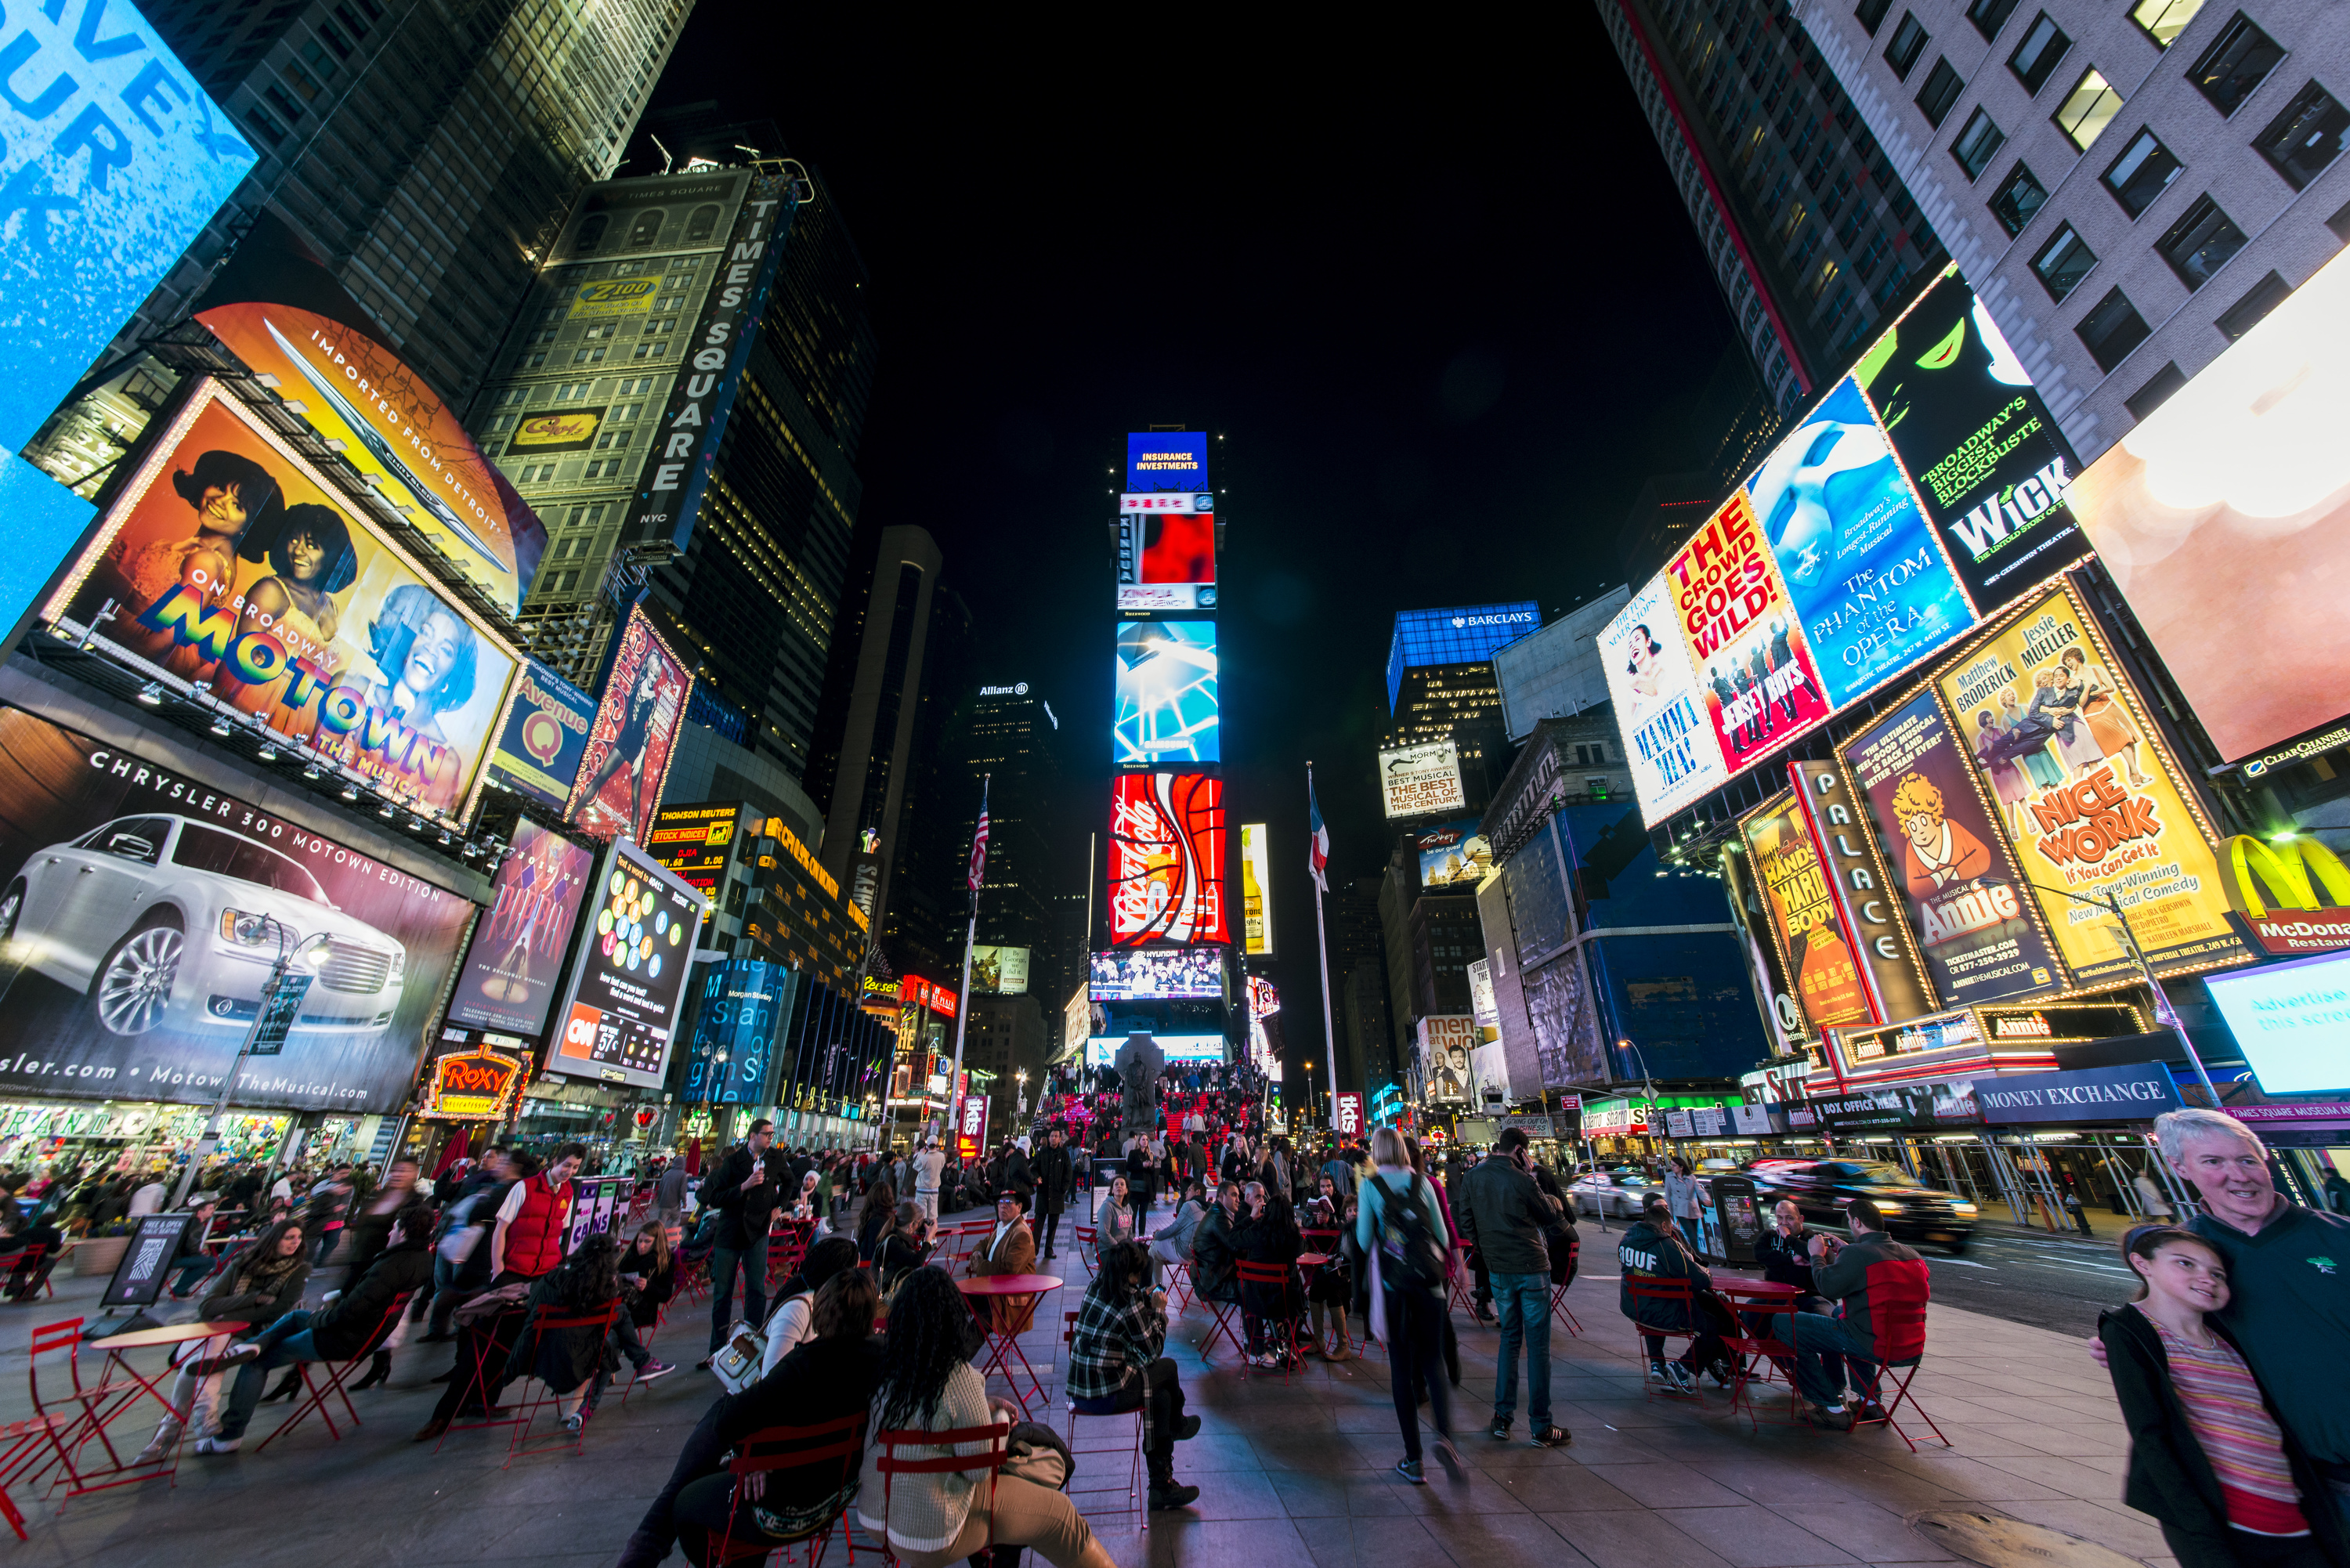 14 moments every New York tourist will experience